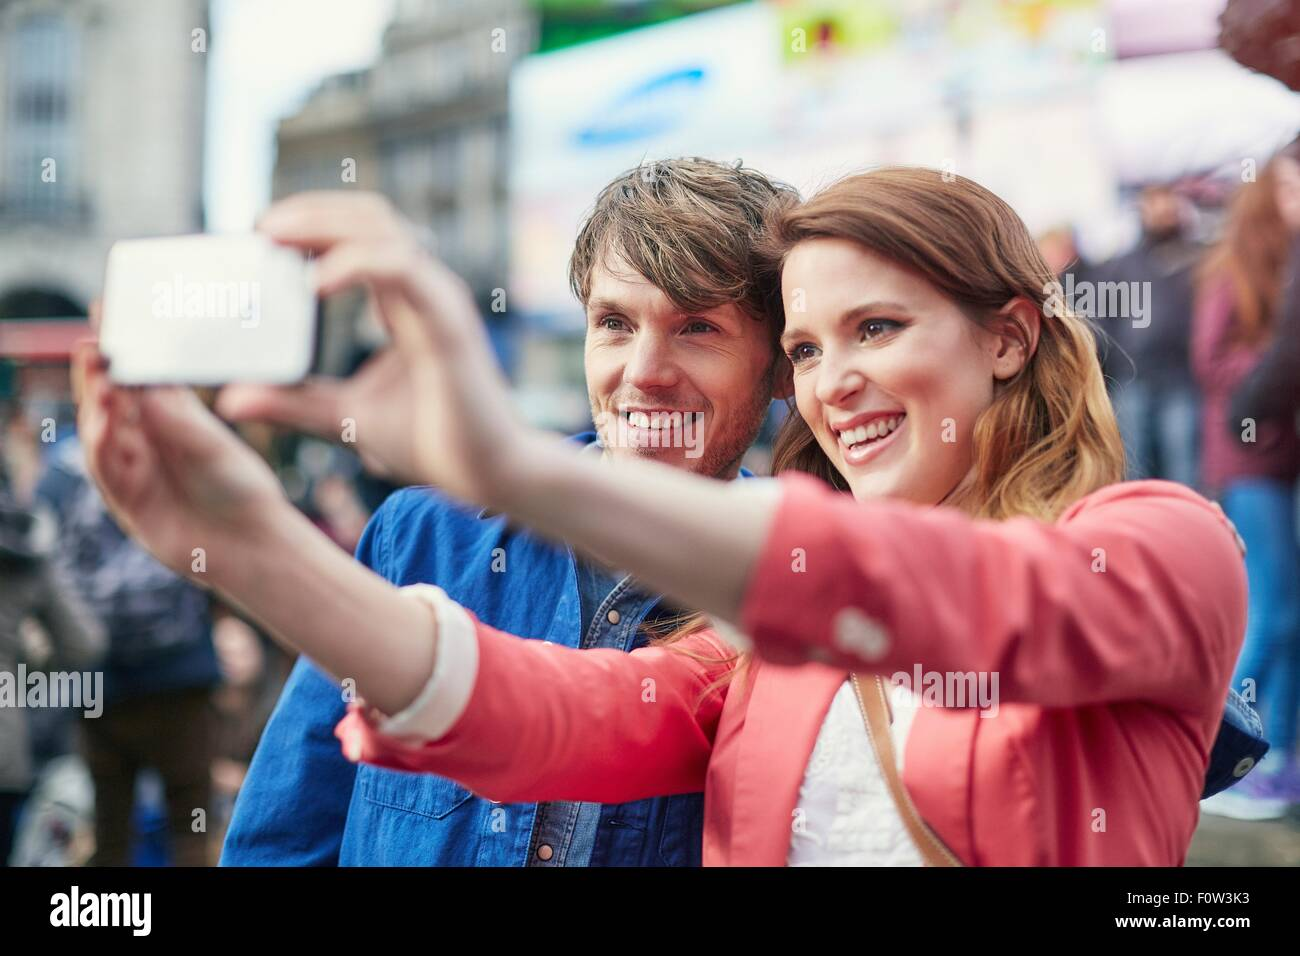 Tourist couple taking smartphone selfie at Piccadilly Circus, London, UK - Stock Image